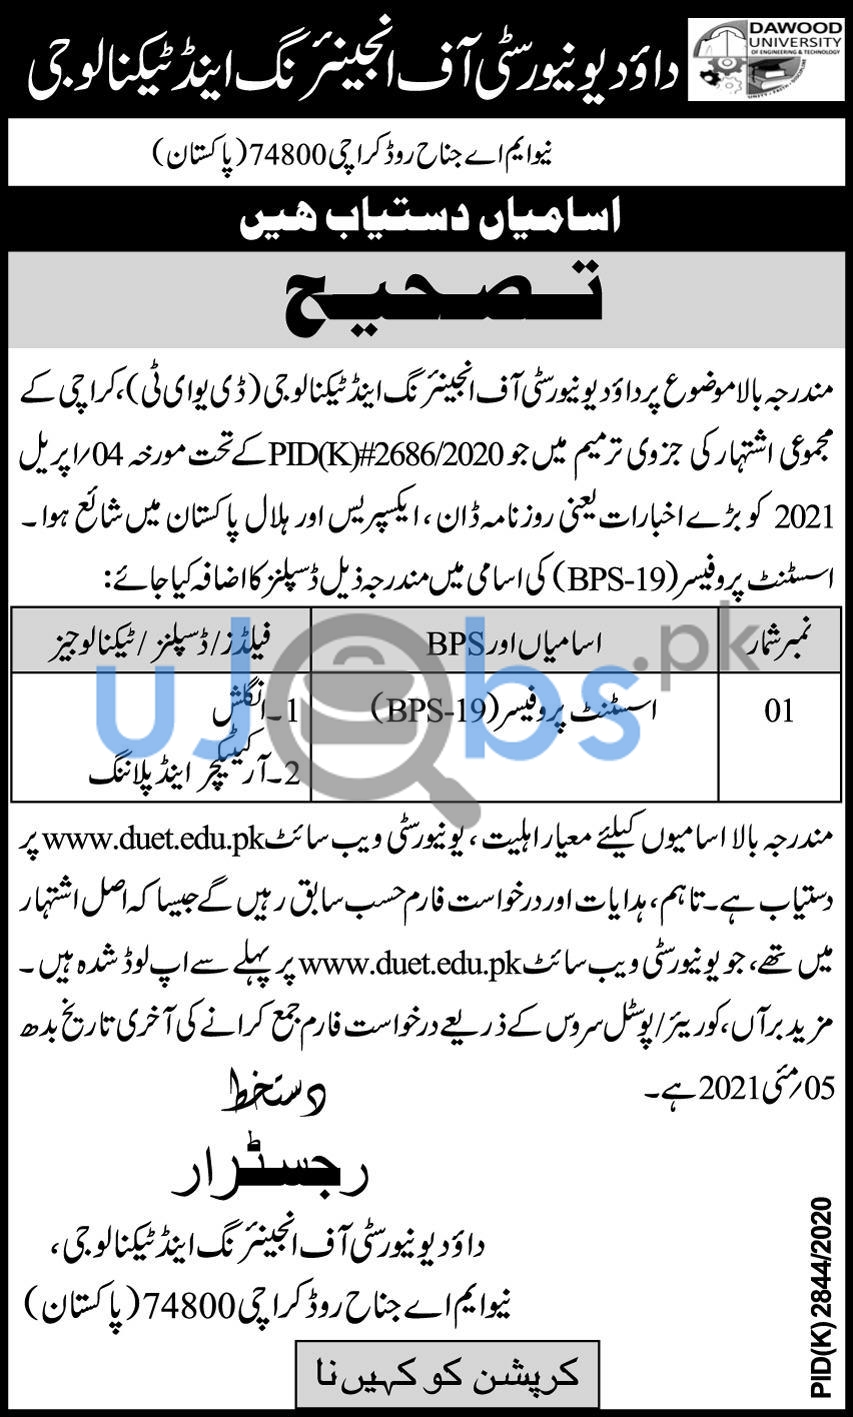 Dawood University of Engineering and Technology Jobs in Karachi 2021 For Assistant Professor